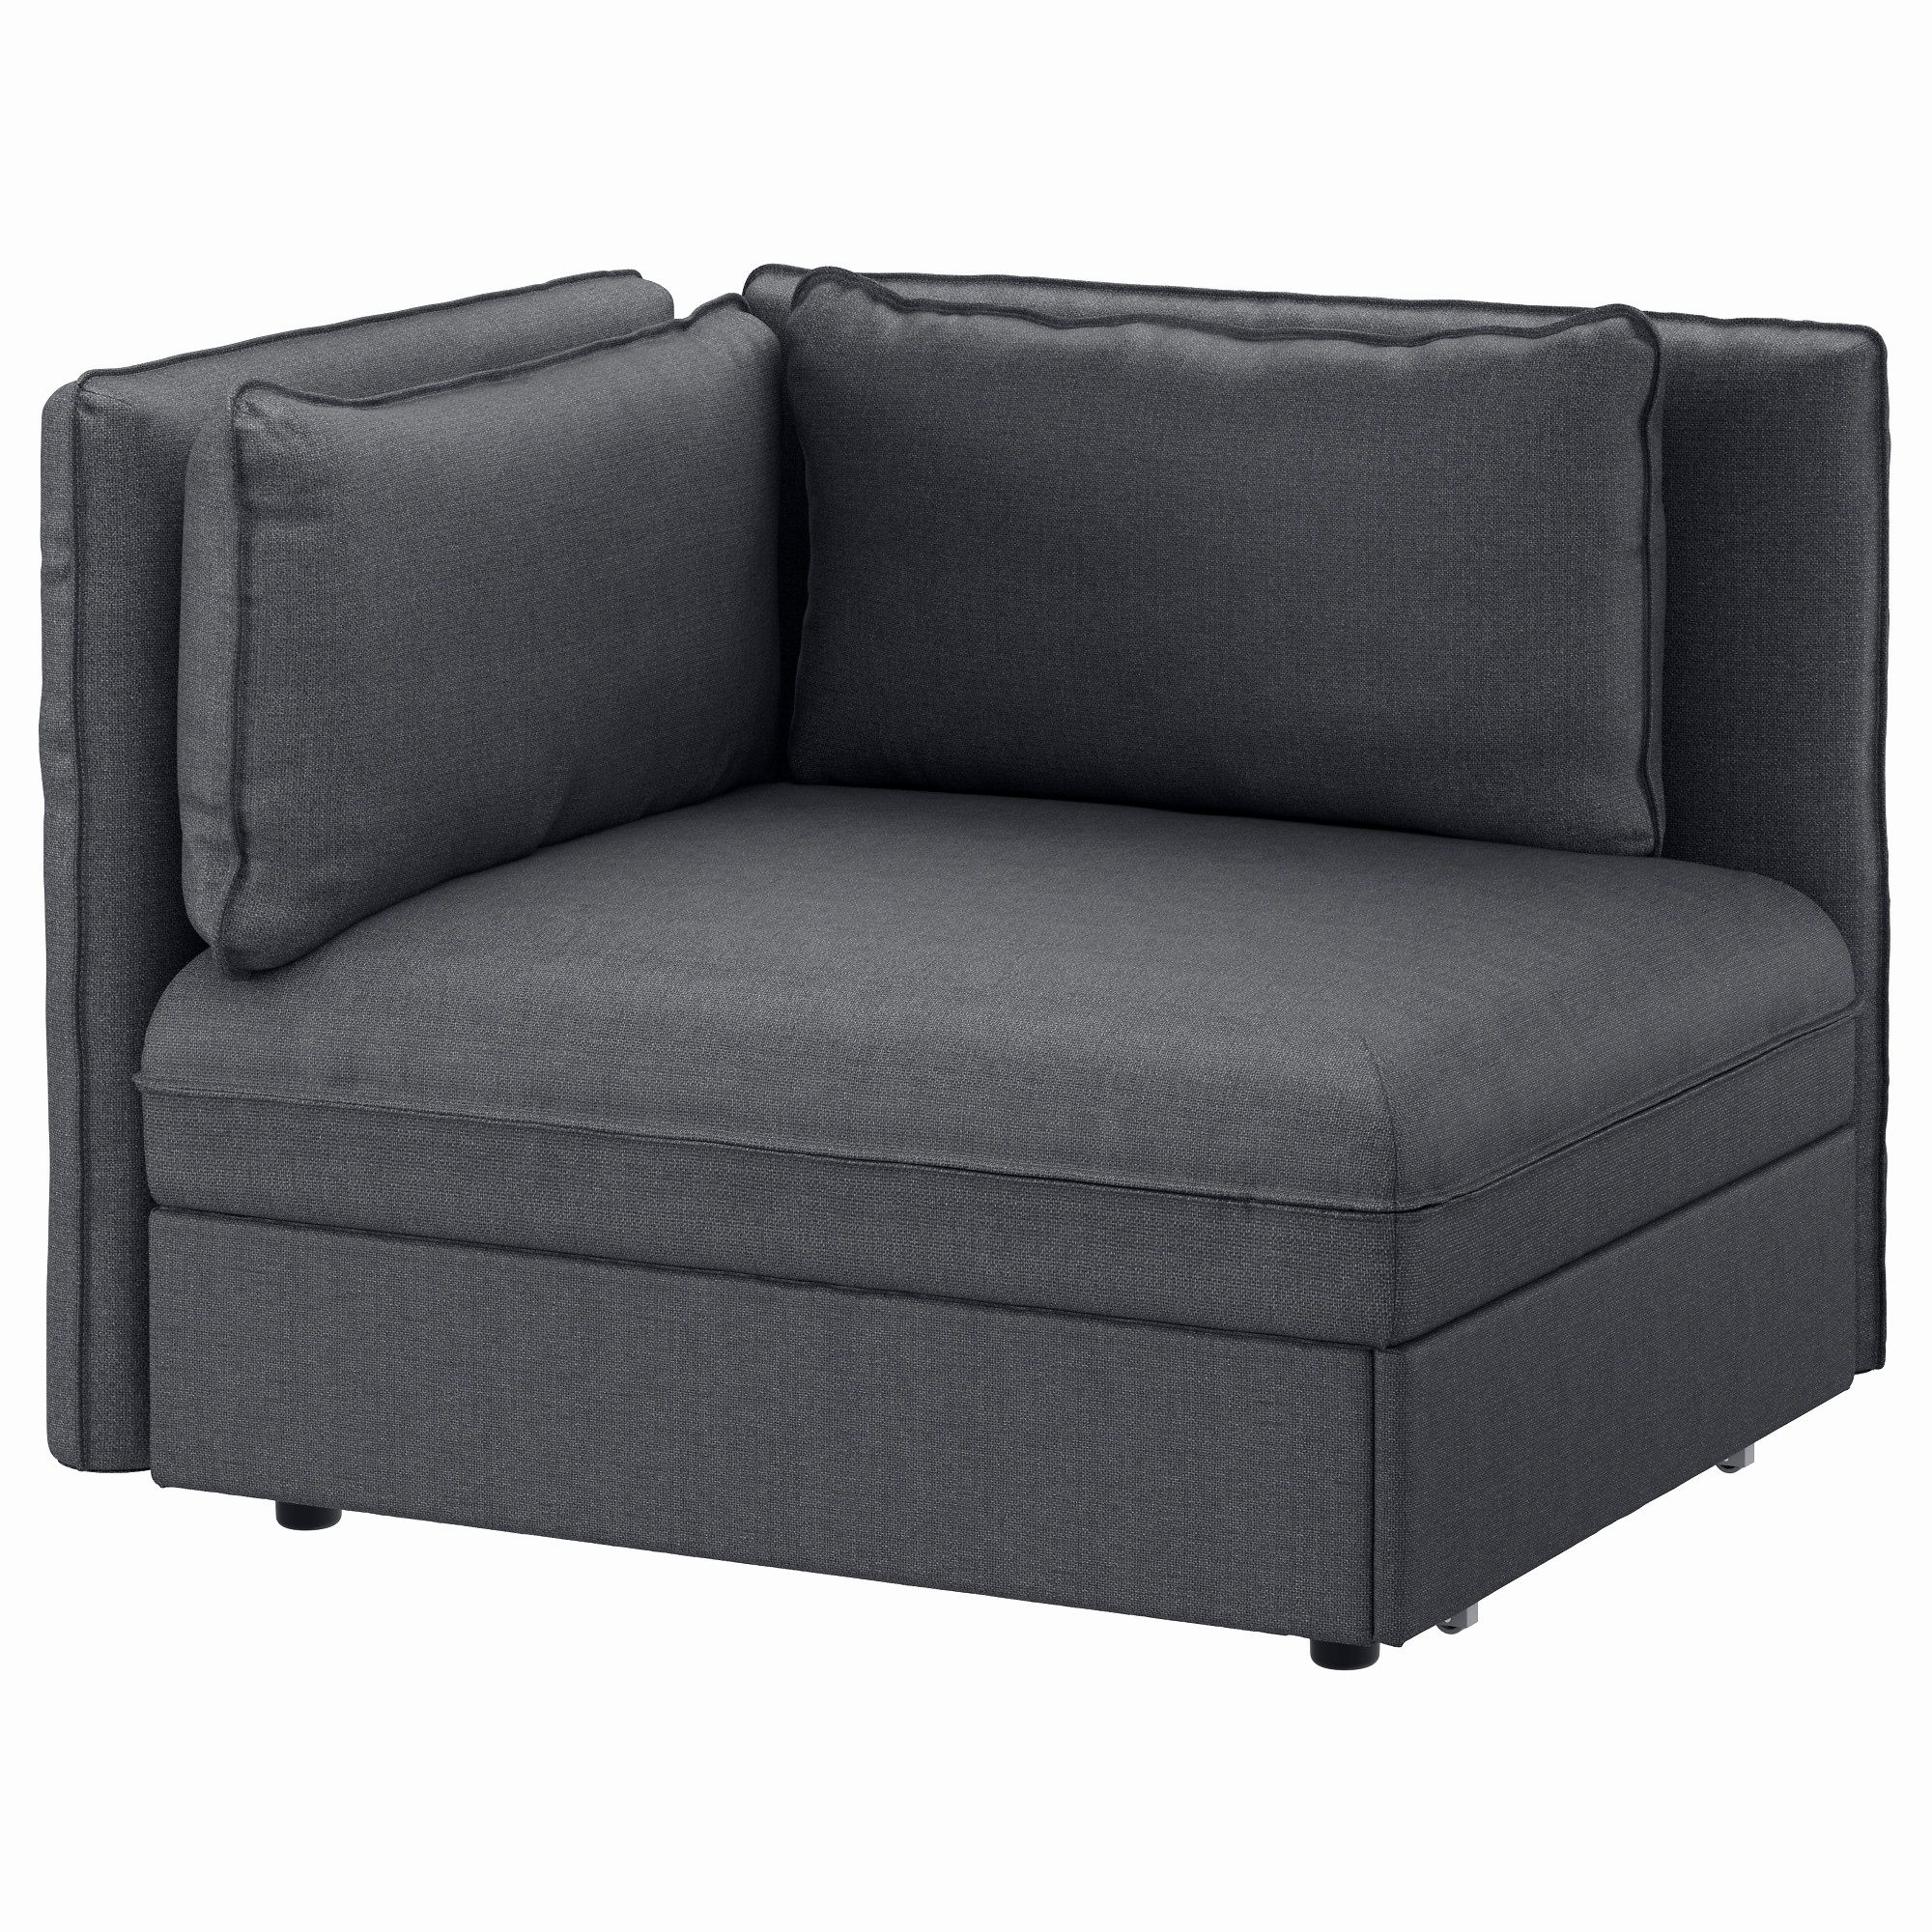 Nebraska Furniture Mart Sofa Sleeper